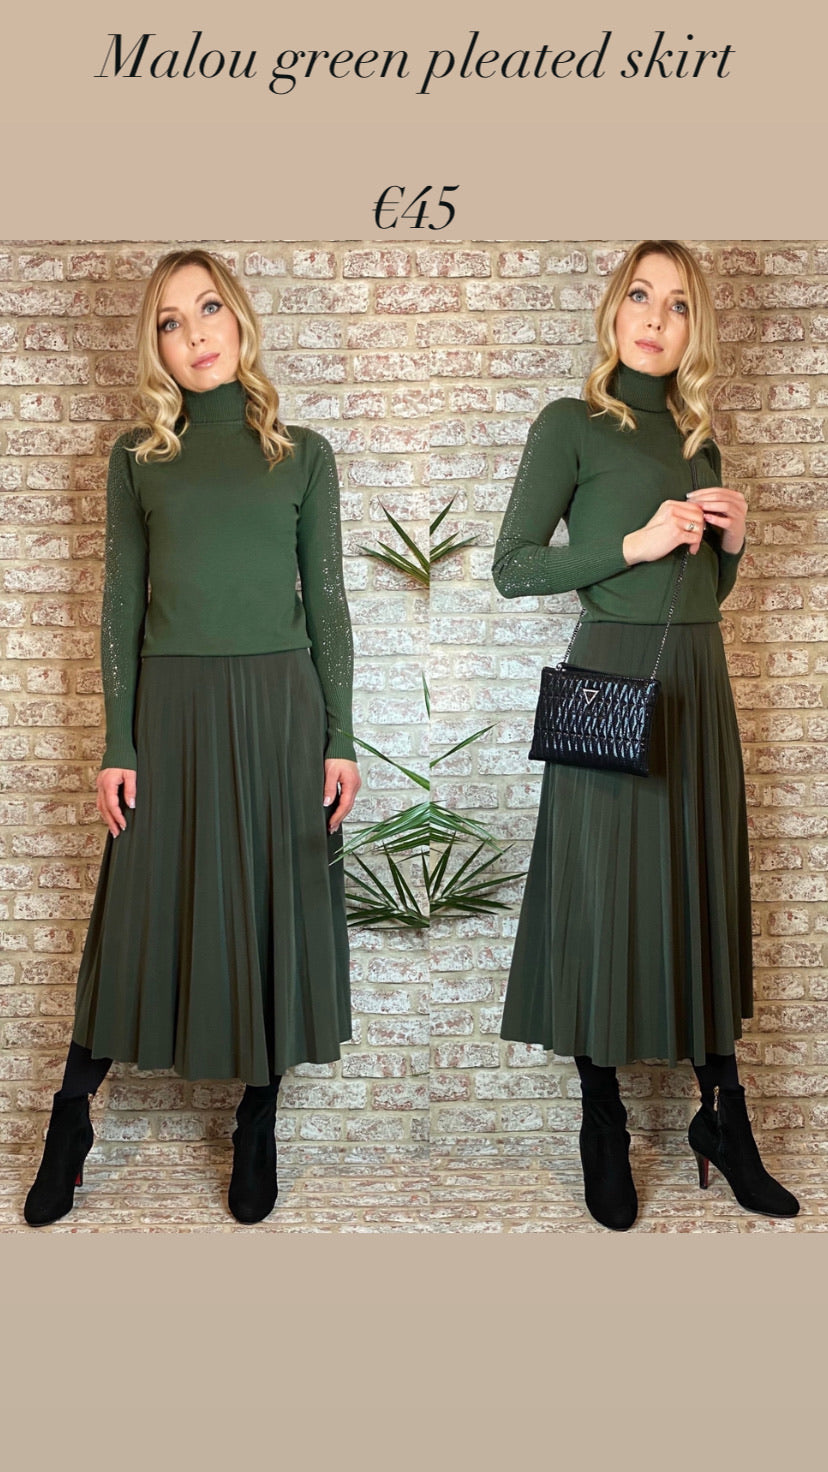 Malou green pleated skirt